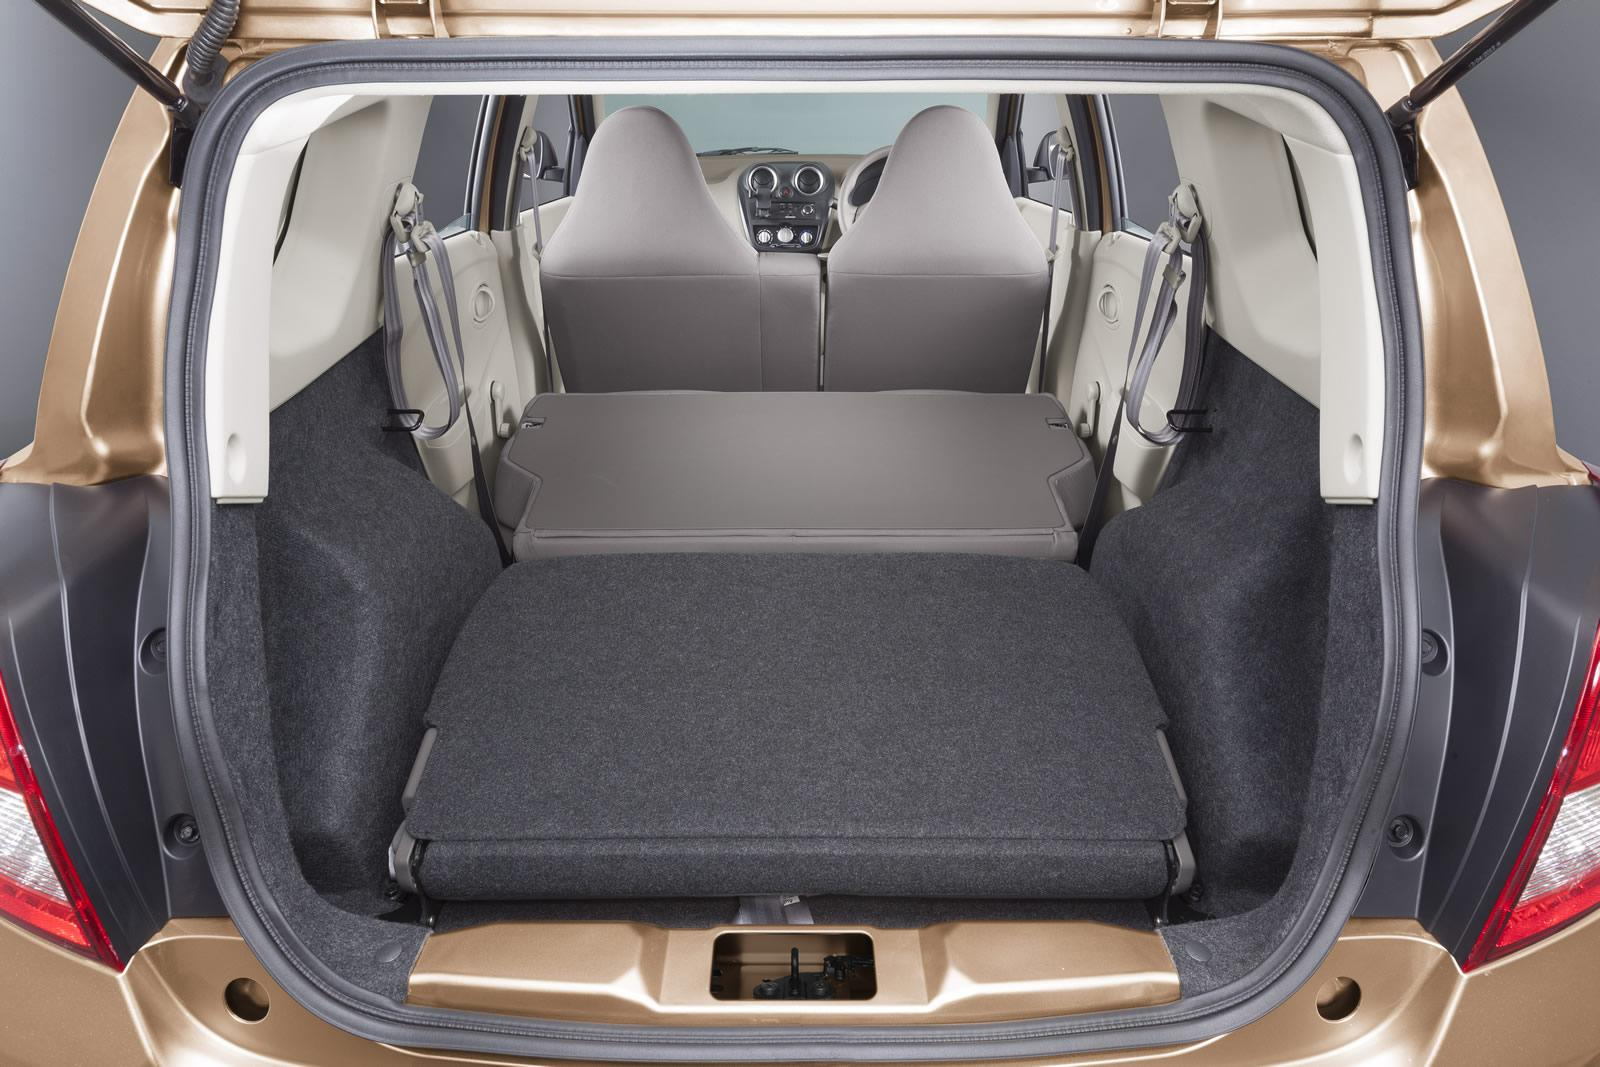 datsun go 7 seater mpv datsun s second model in india. Black Bedroom Furniture Sets. Home Design Ideas